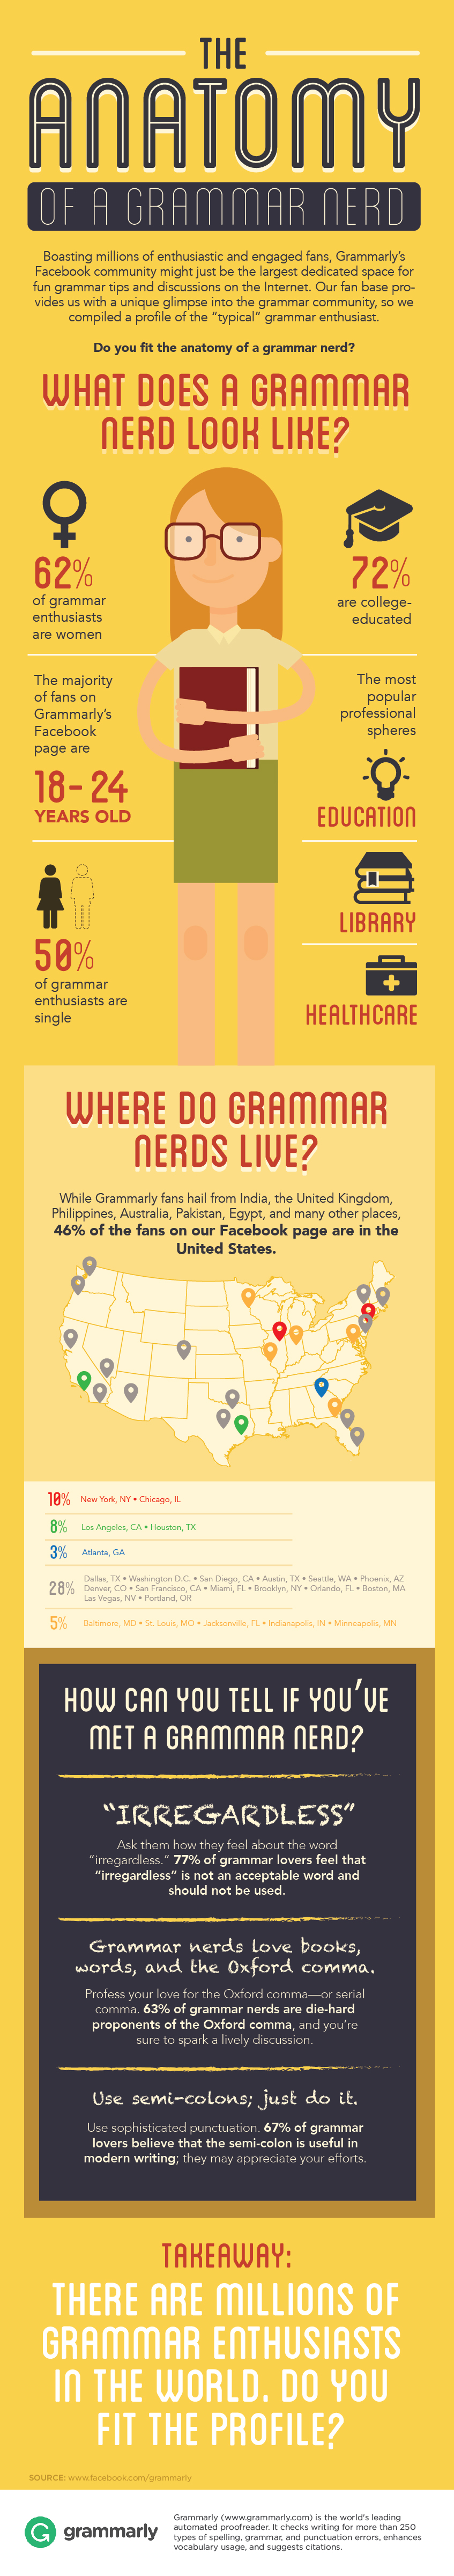 The Anatomy of a Grammar Nerd - Infographic